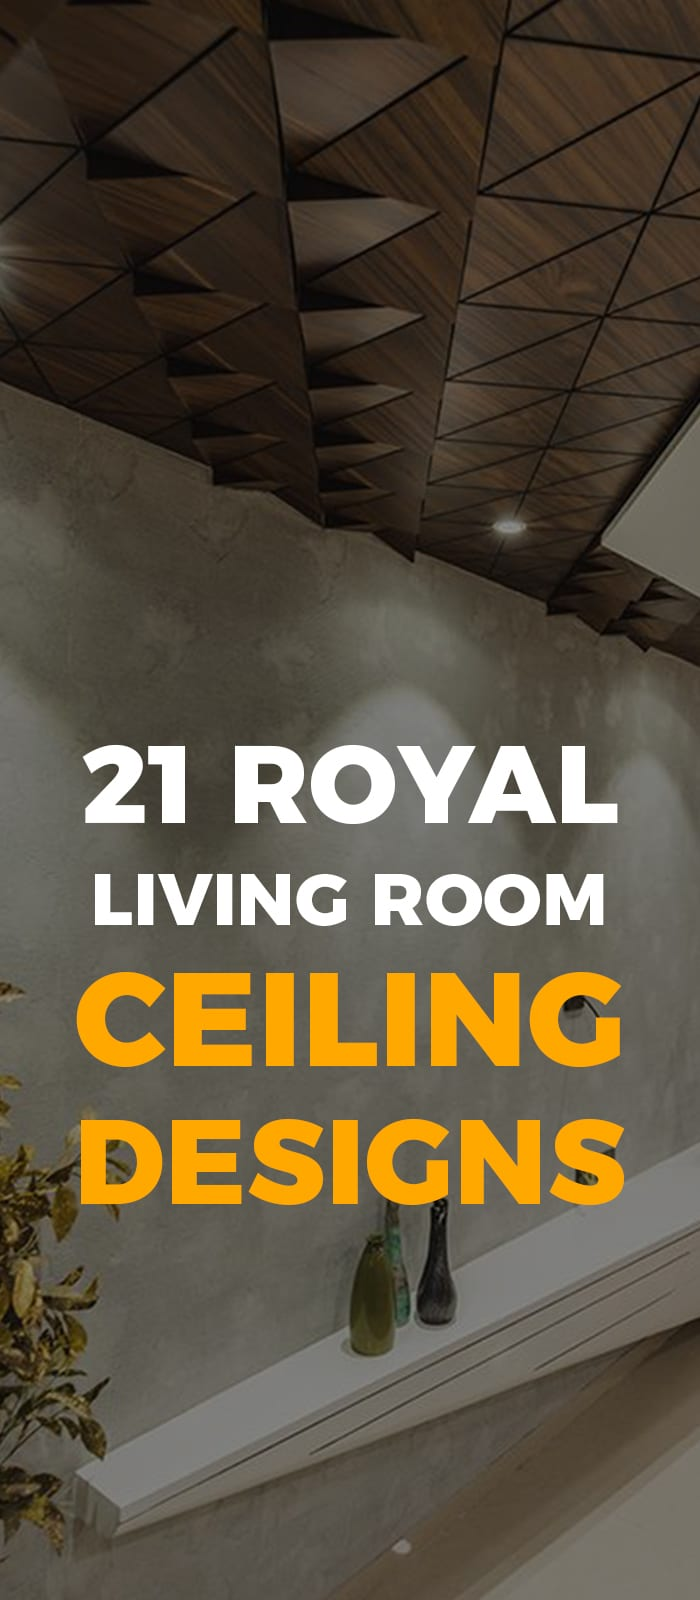 Wood ceiling design for living room in 2019.